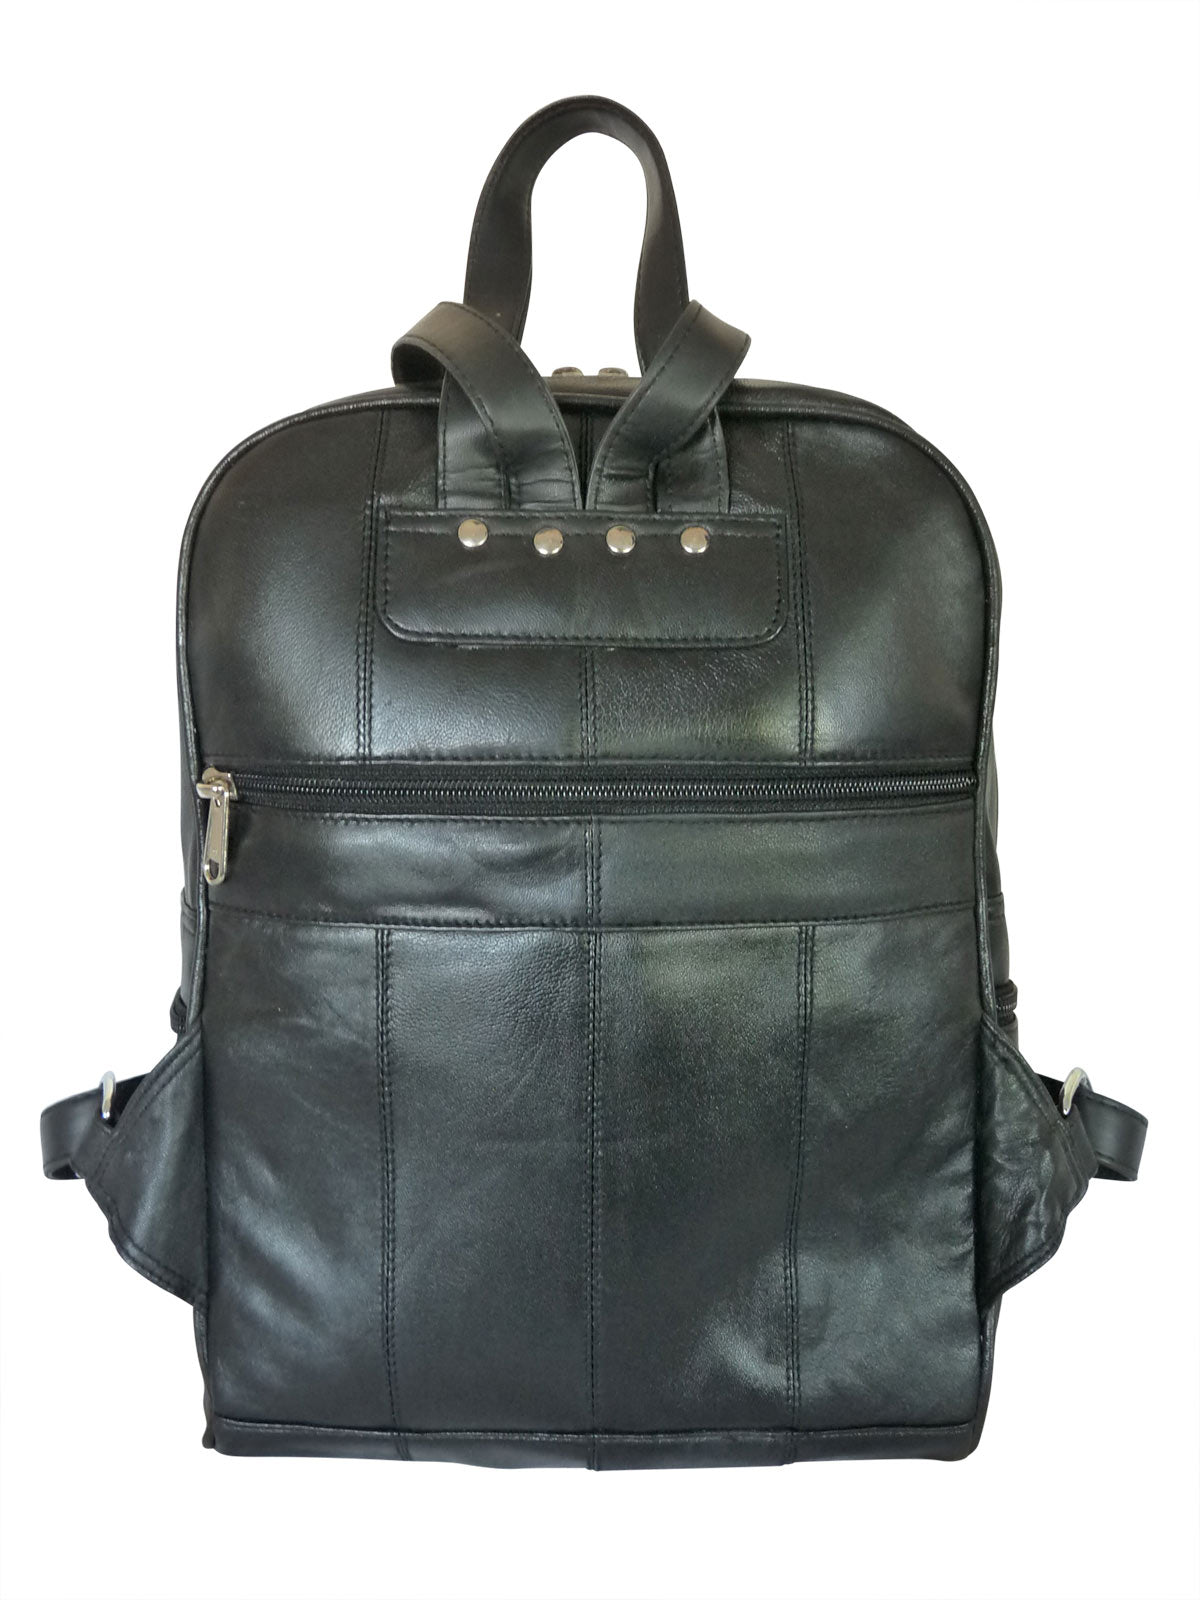 Real leather rucksack handbag QL193Kf